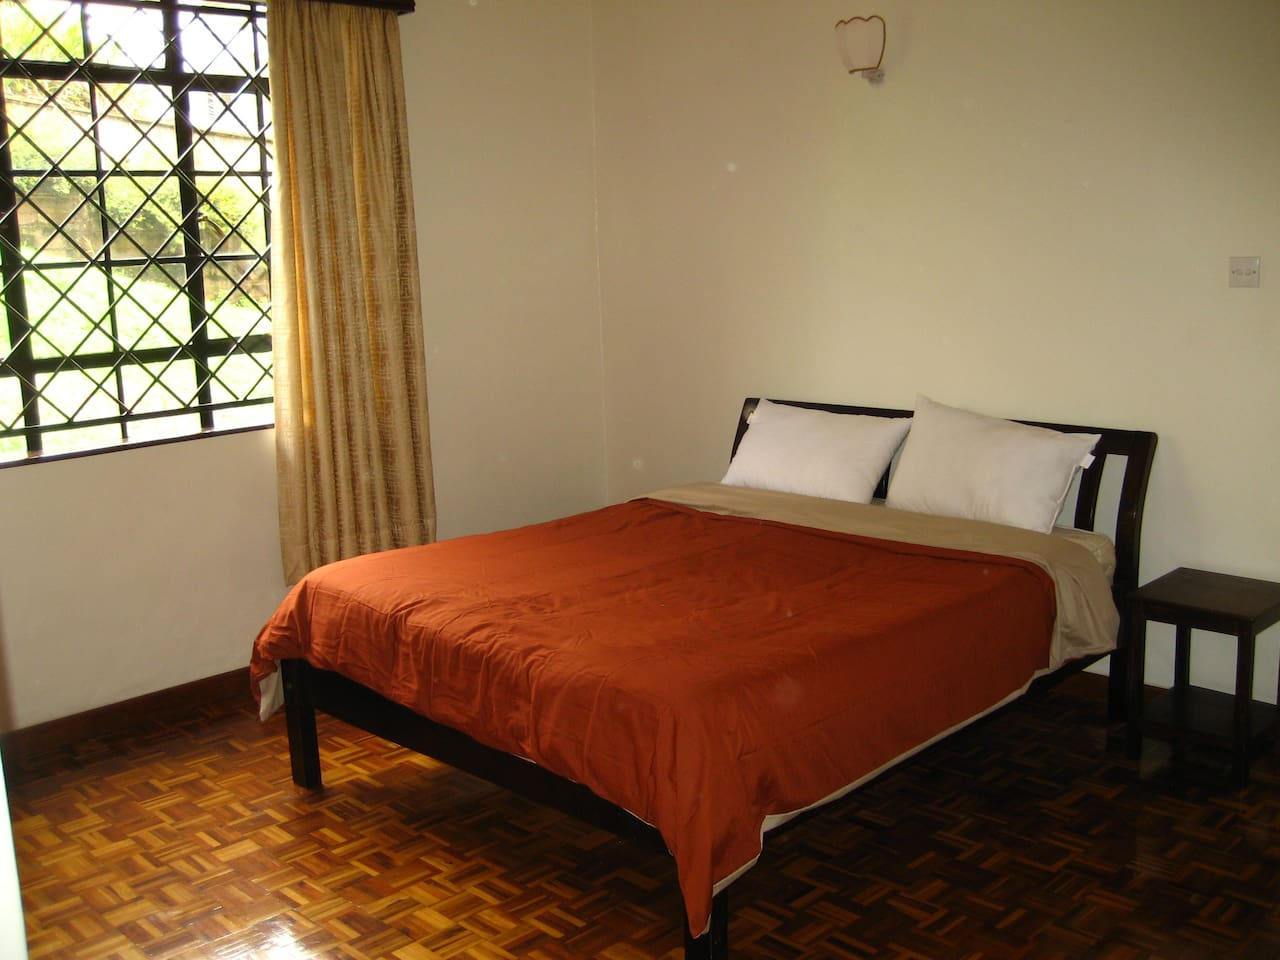 Spacious, bright room with a double bed ready to host you!